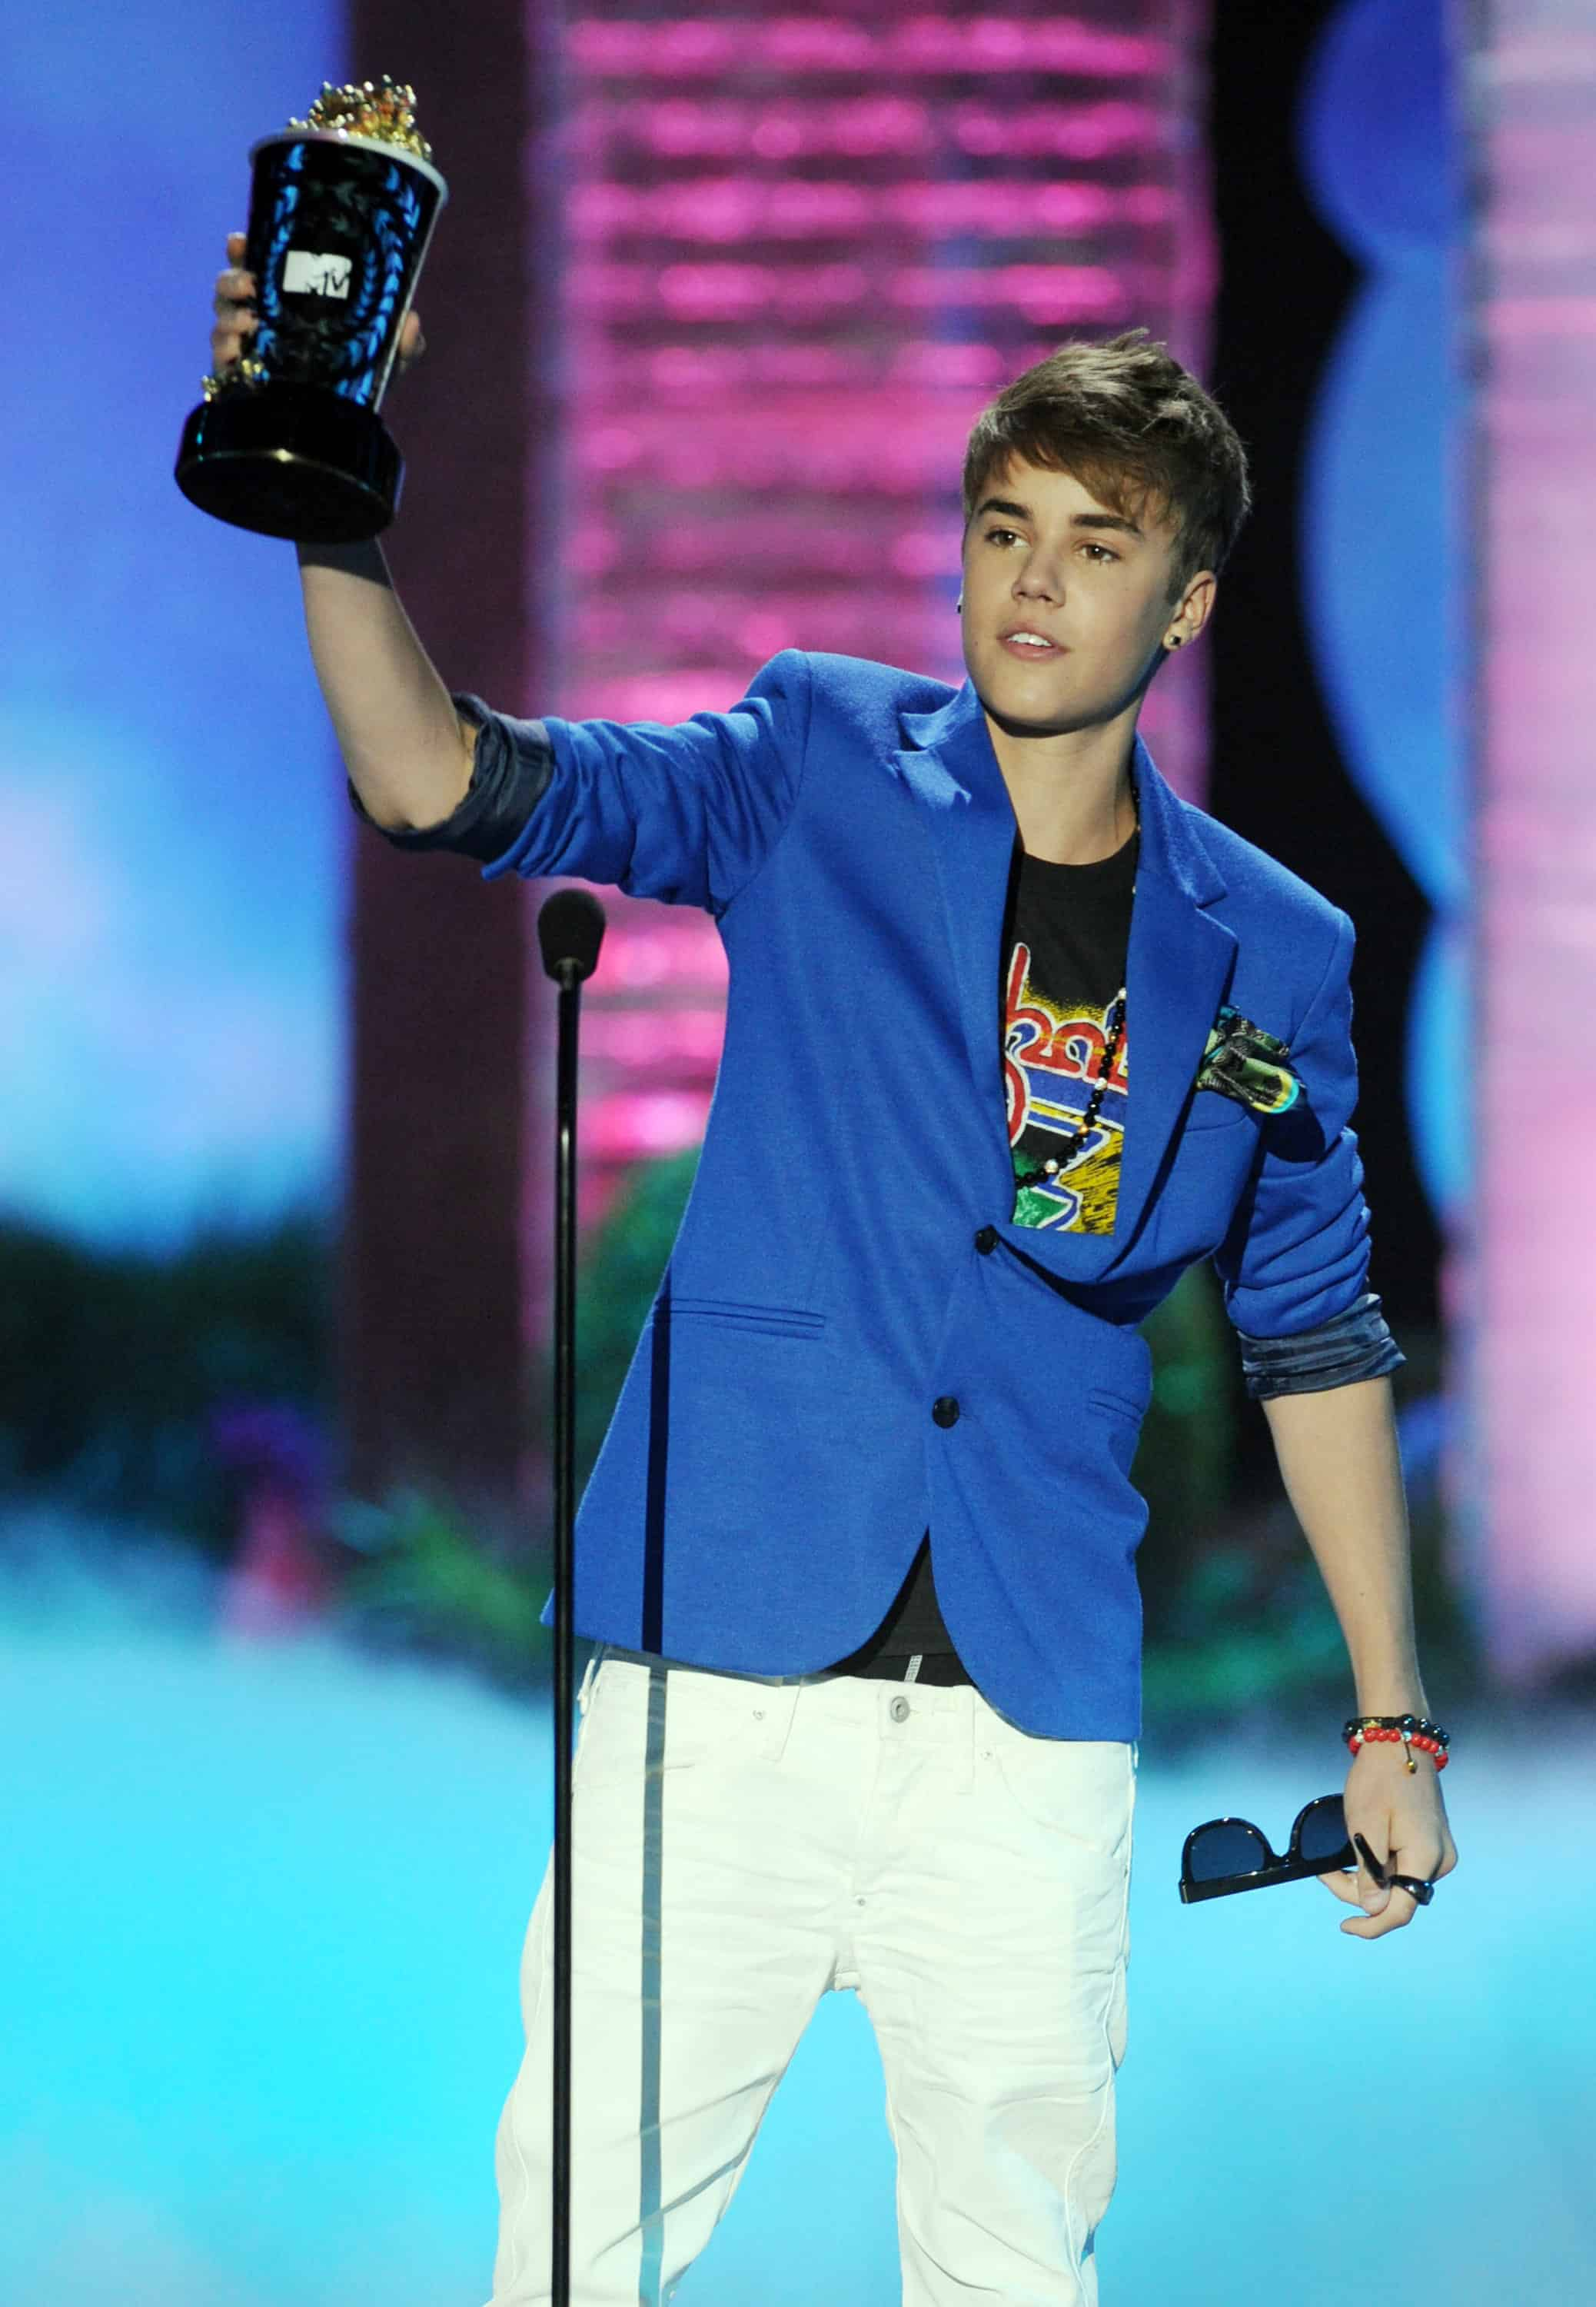 Who is justin bieber dating at the moment